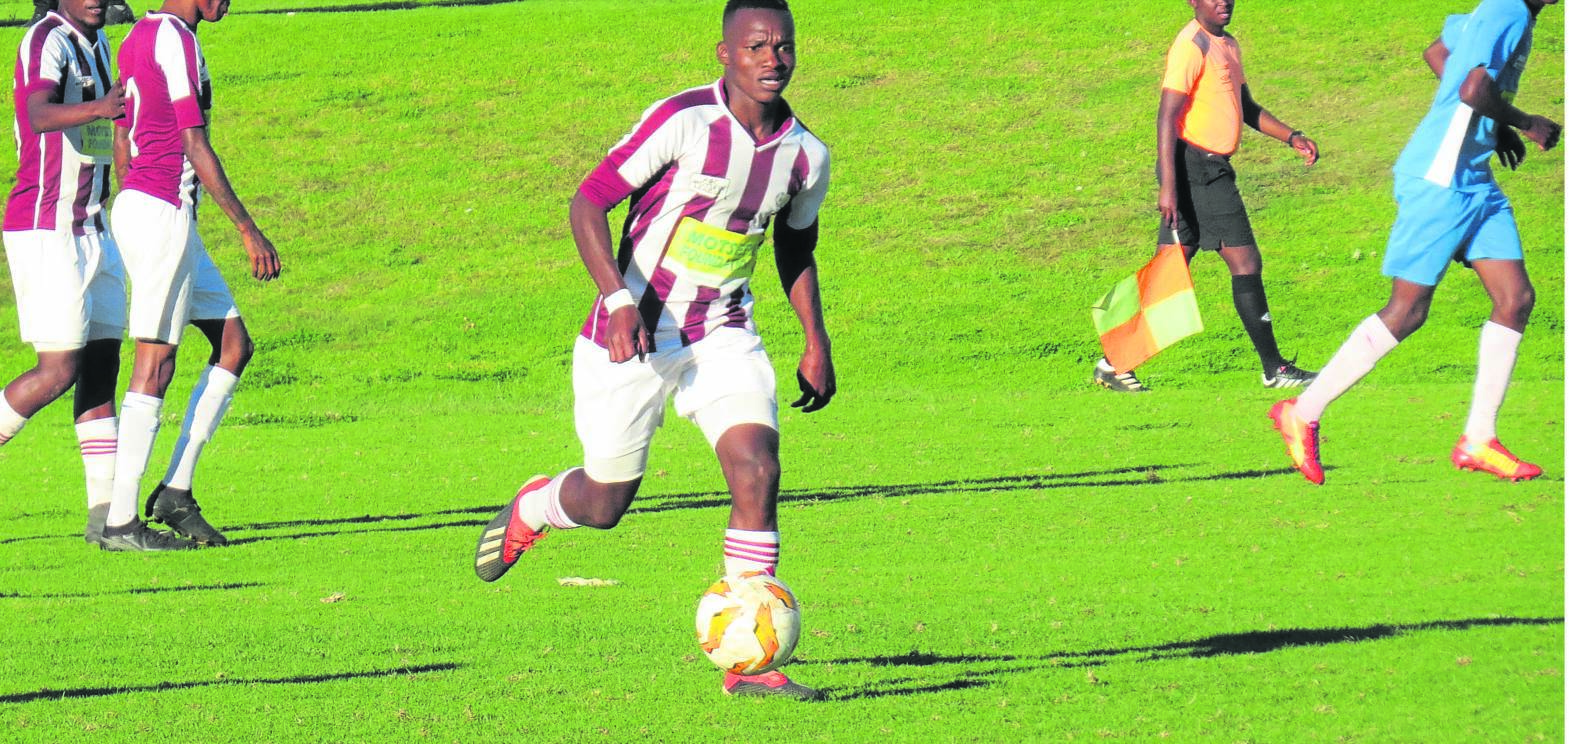 Alfred Moshoeu, midfield vice-captain of Mangaung Unite, will lead his team in the promotion play-offs. Photo: Teboho Setena